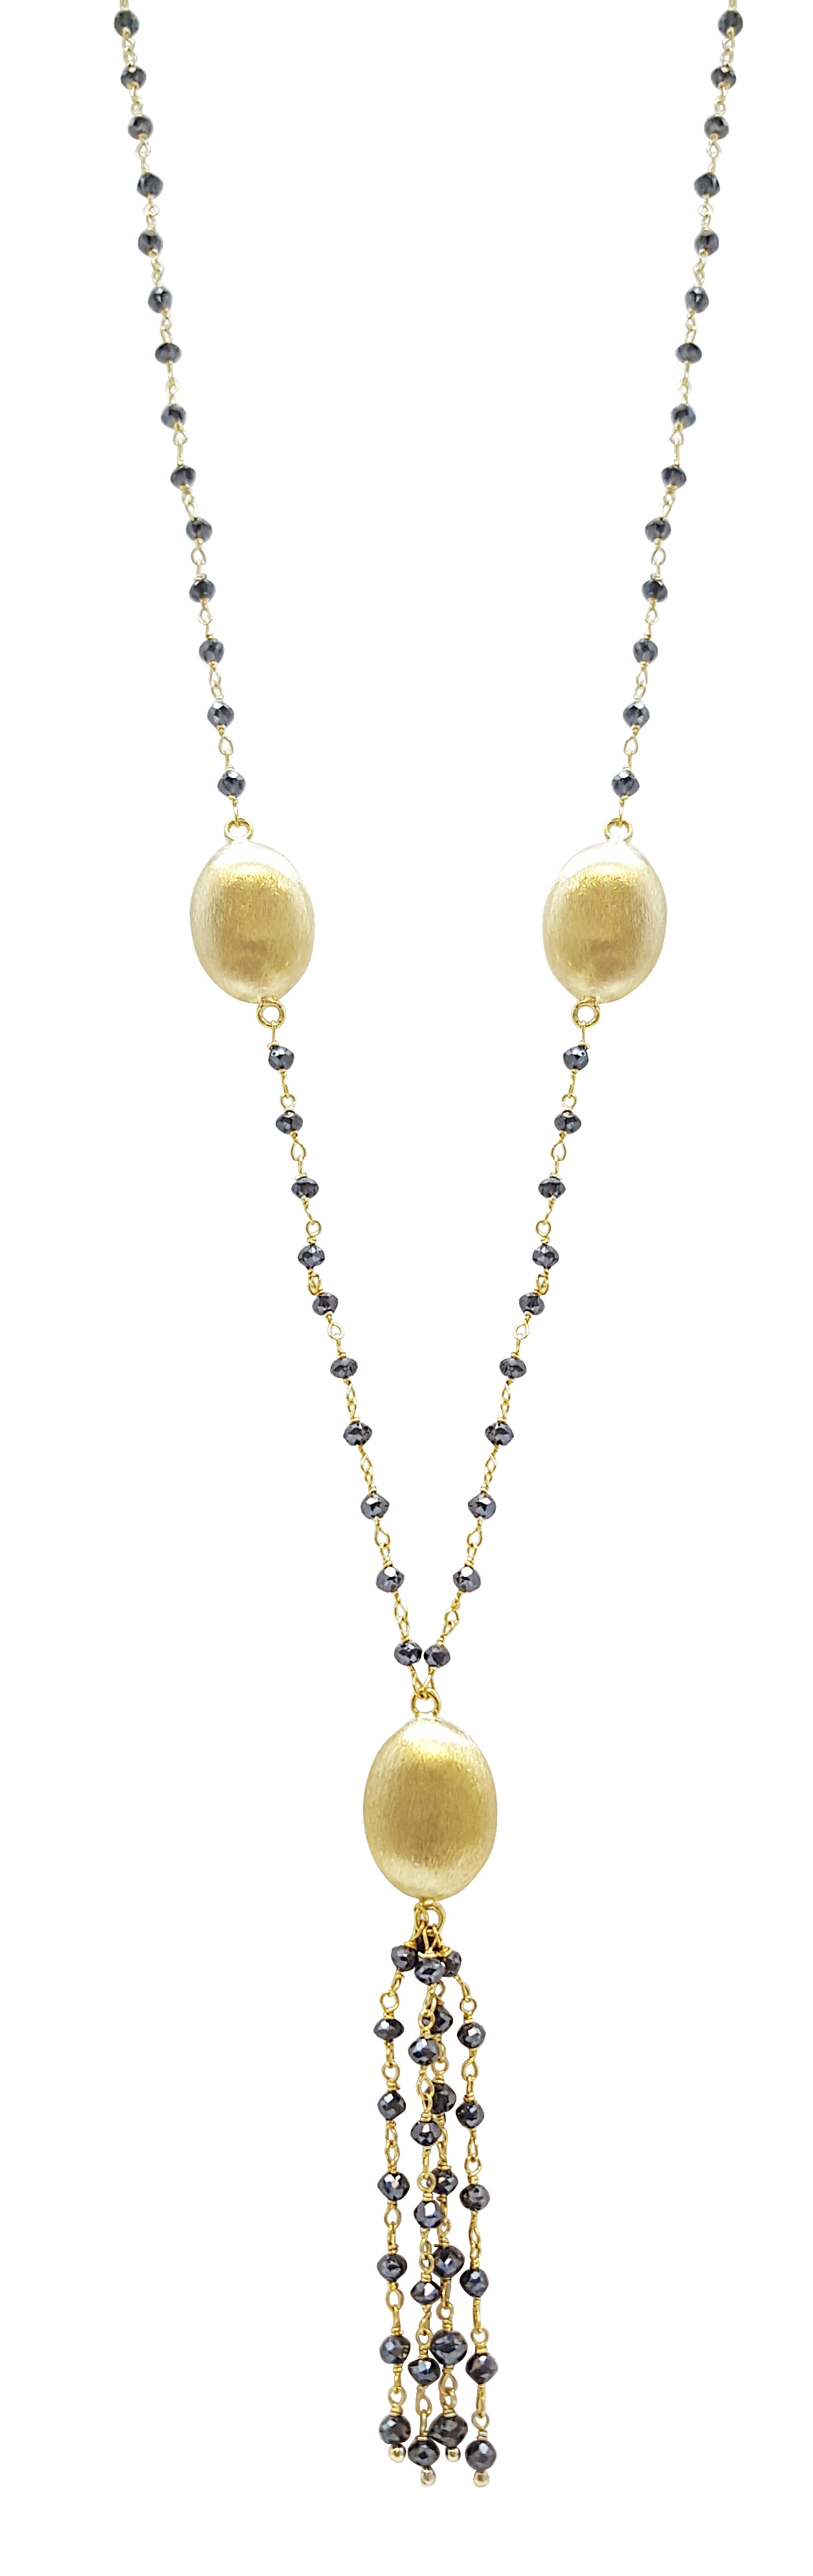 Black Diamond 14K Yellow Gold Rosary Bead with Gold Tussel by TIAARA